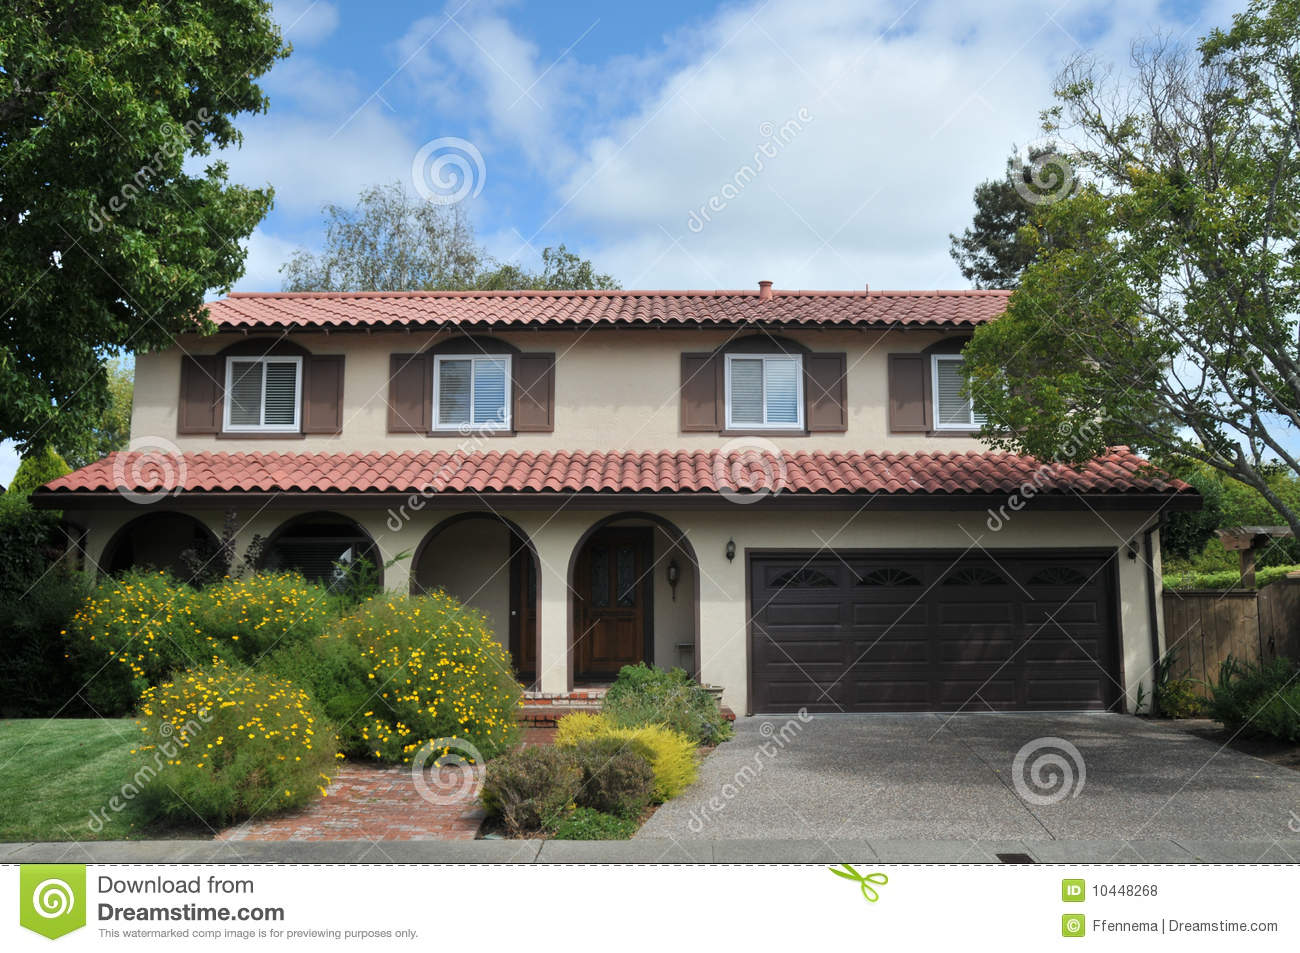 Well-liked Red tile roof house stock photo. Image of middle, nobody - 10448268 AU74